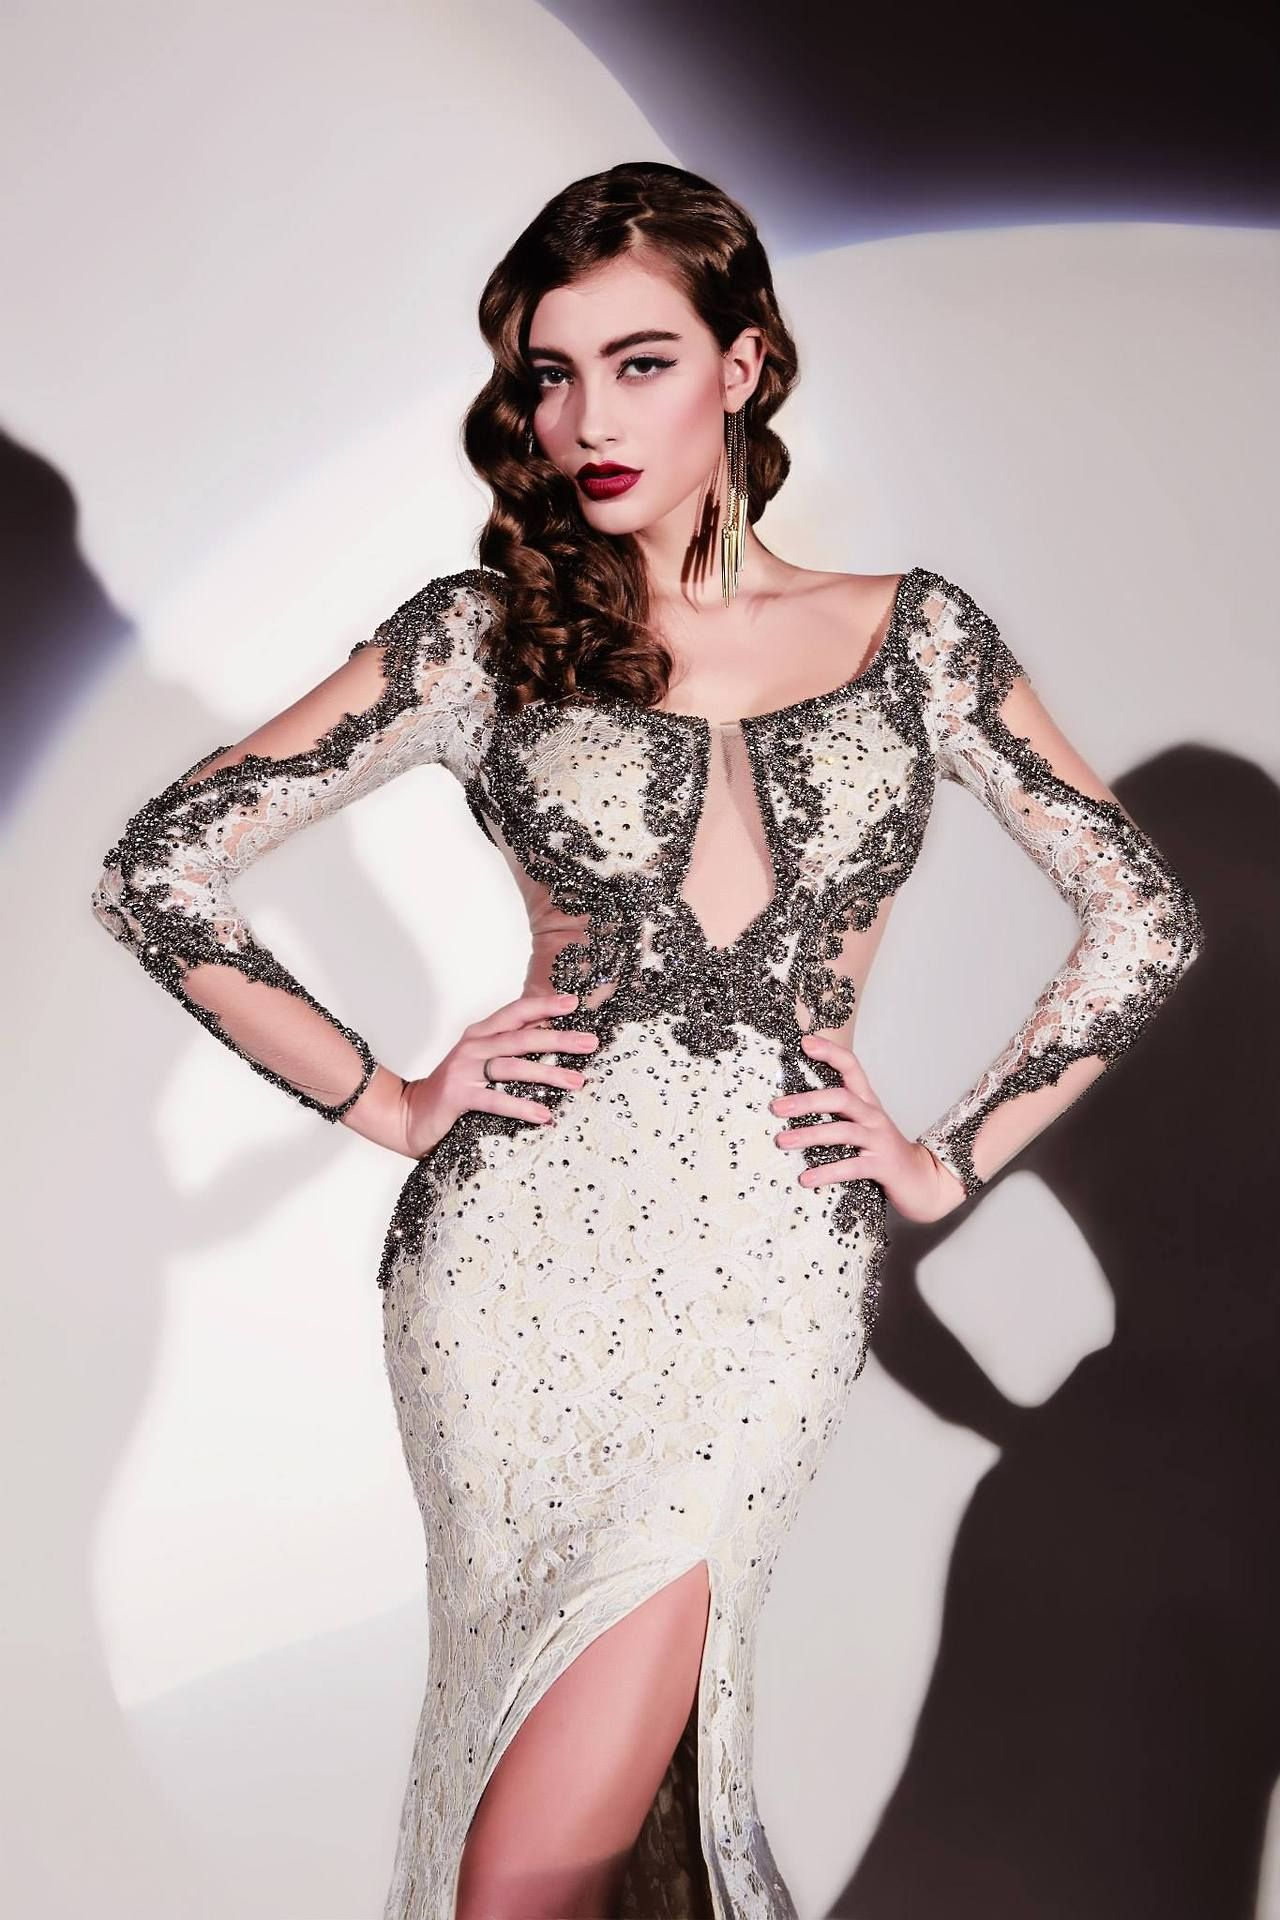 Danny tabet fashion pinterest black tie affair glamour and